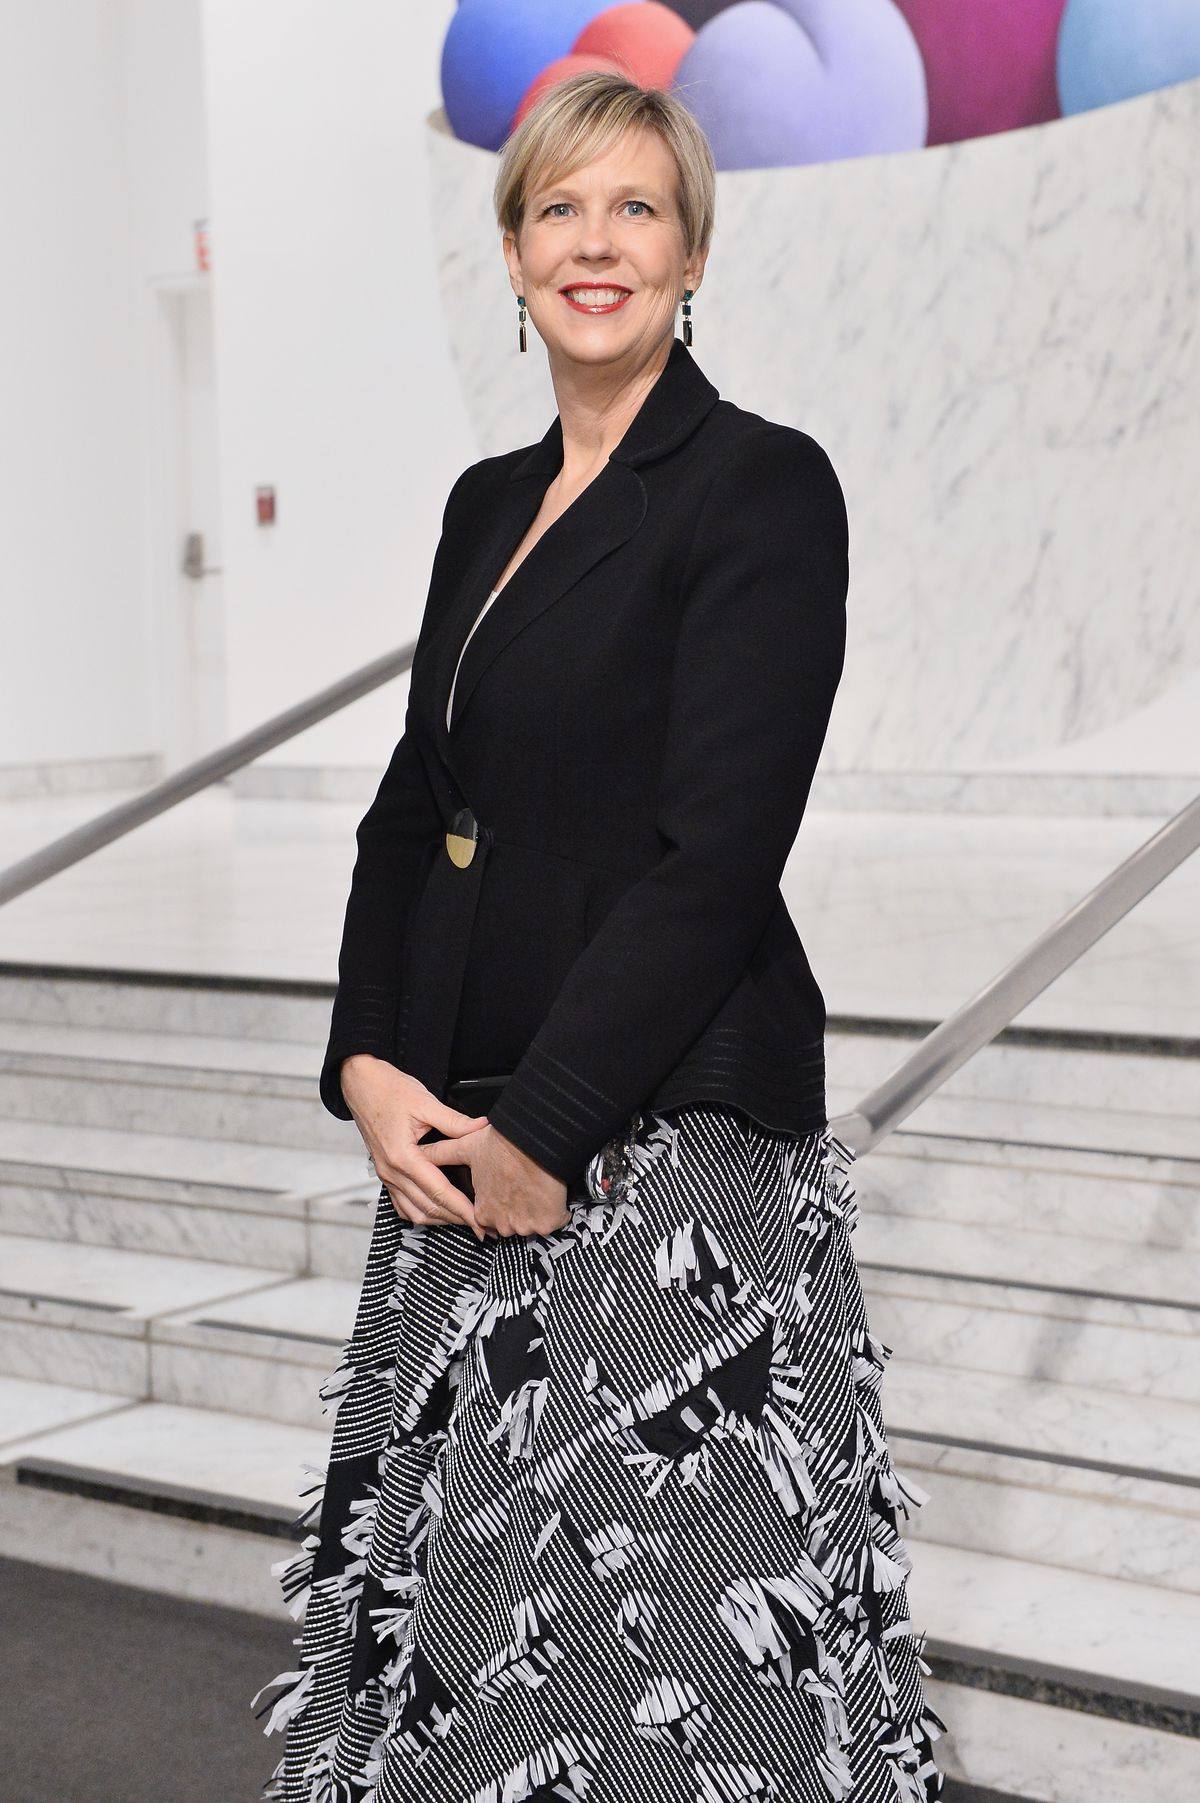 A photo of Joanne Heyler, founding director of the Broad Museum, at the Hammer Museum's 14th annual Gala in the Garden